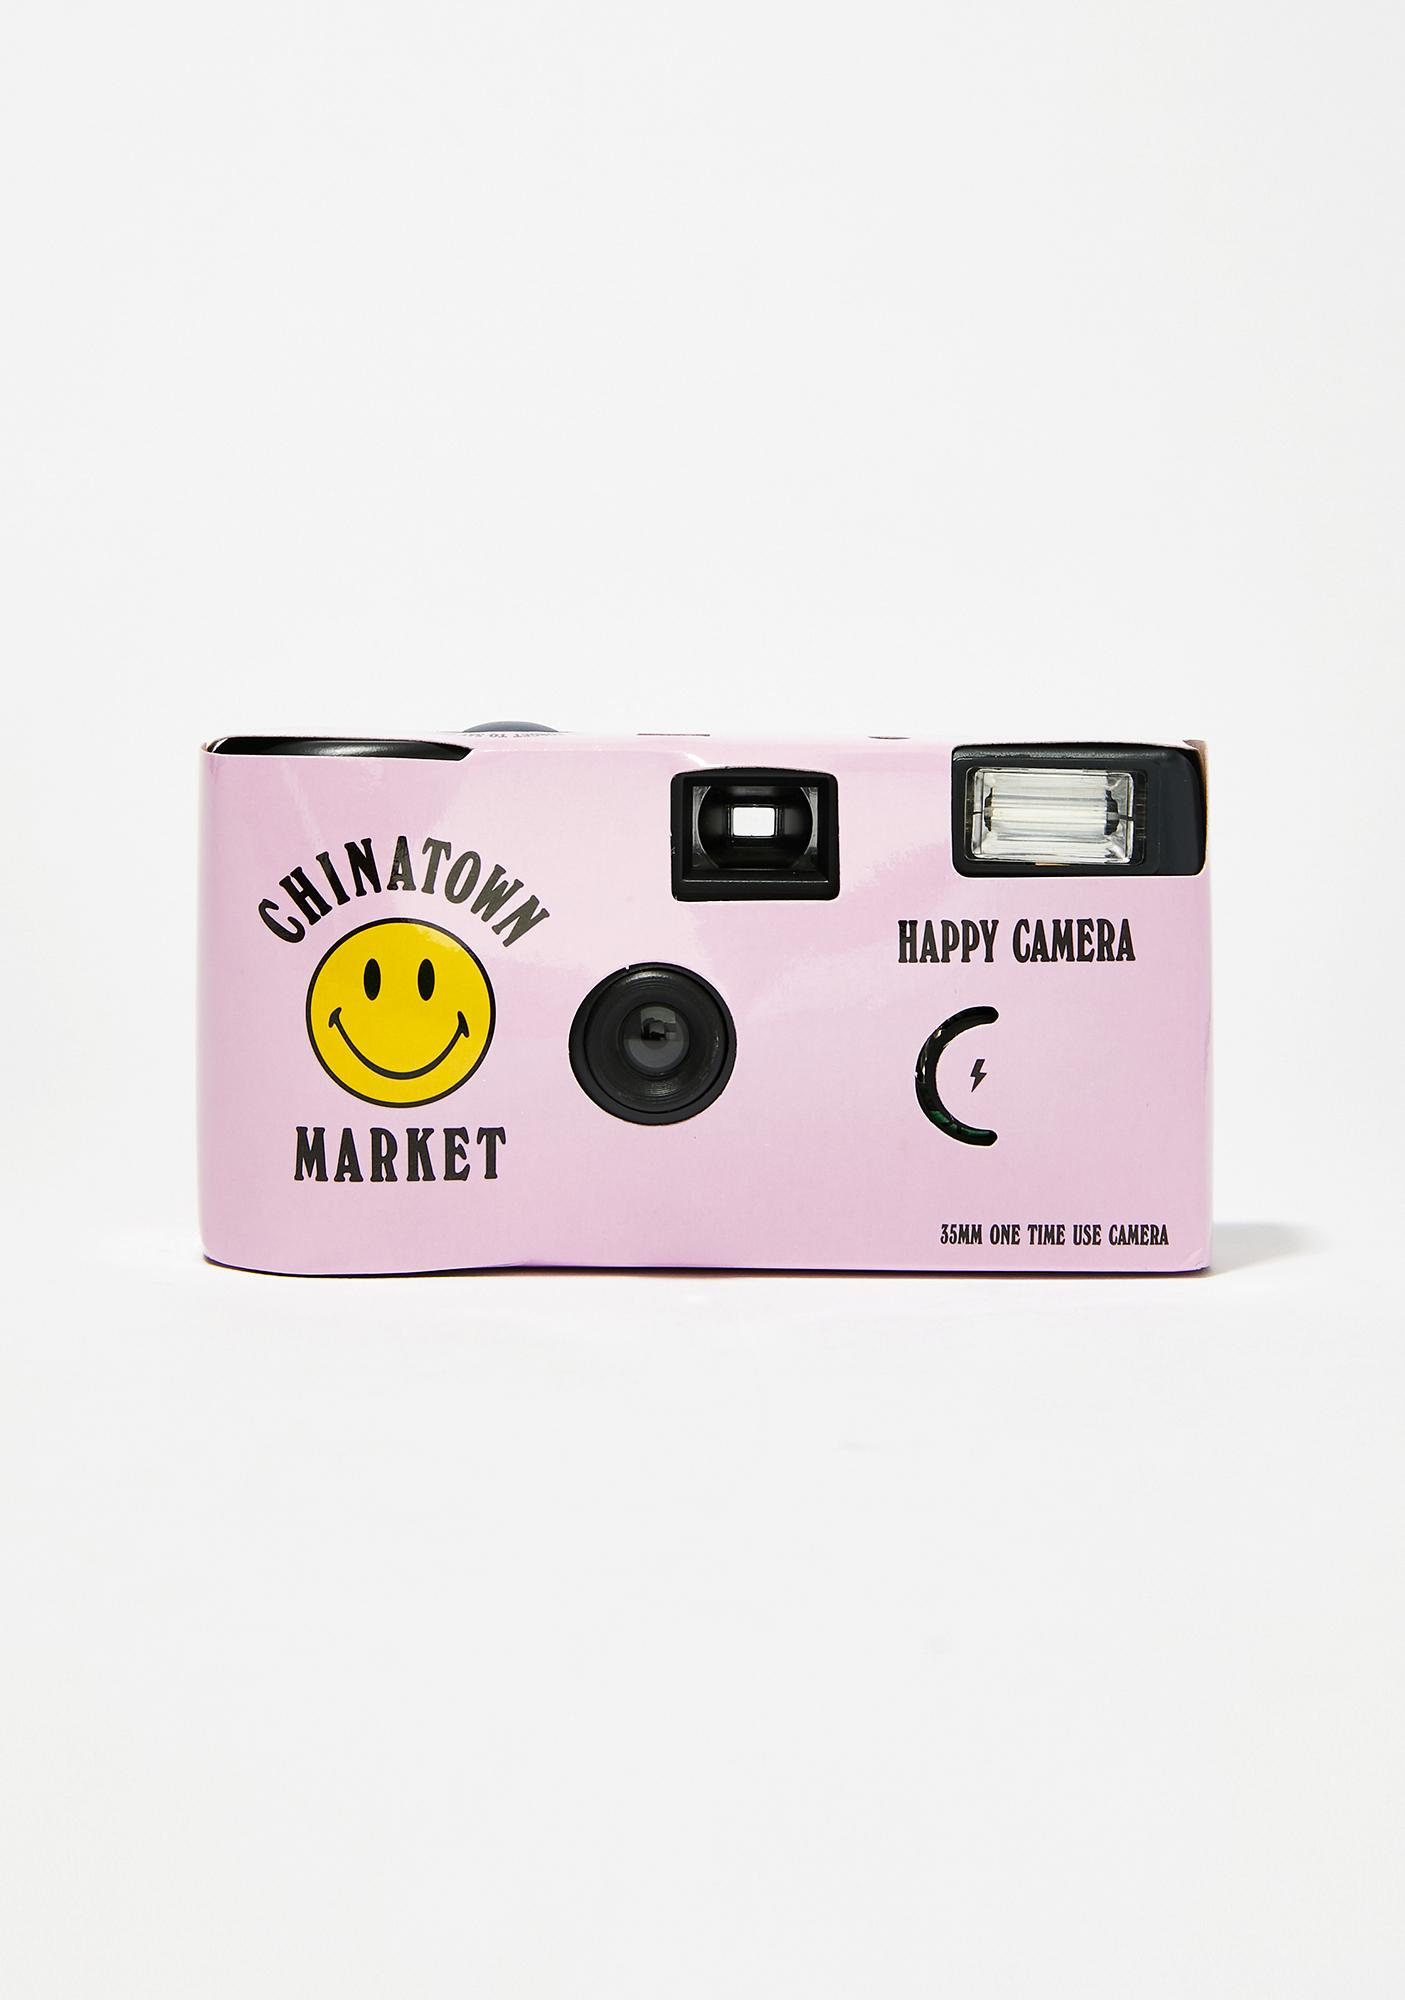 CHINATOWN MARKET Pink Smiley Disposable Camera